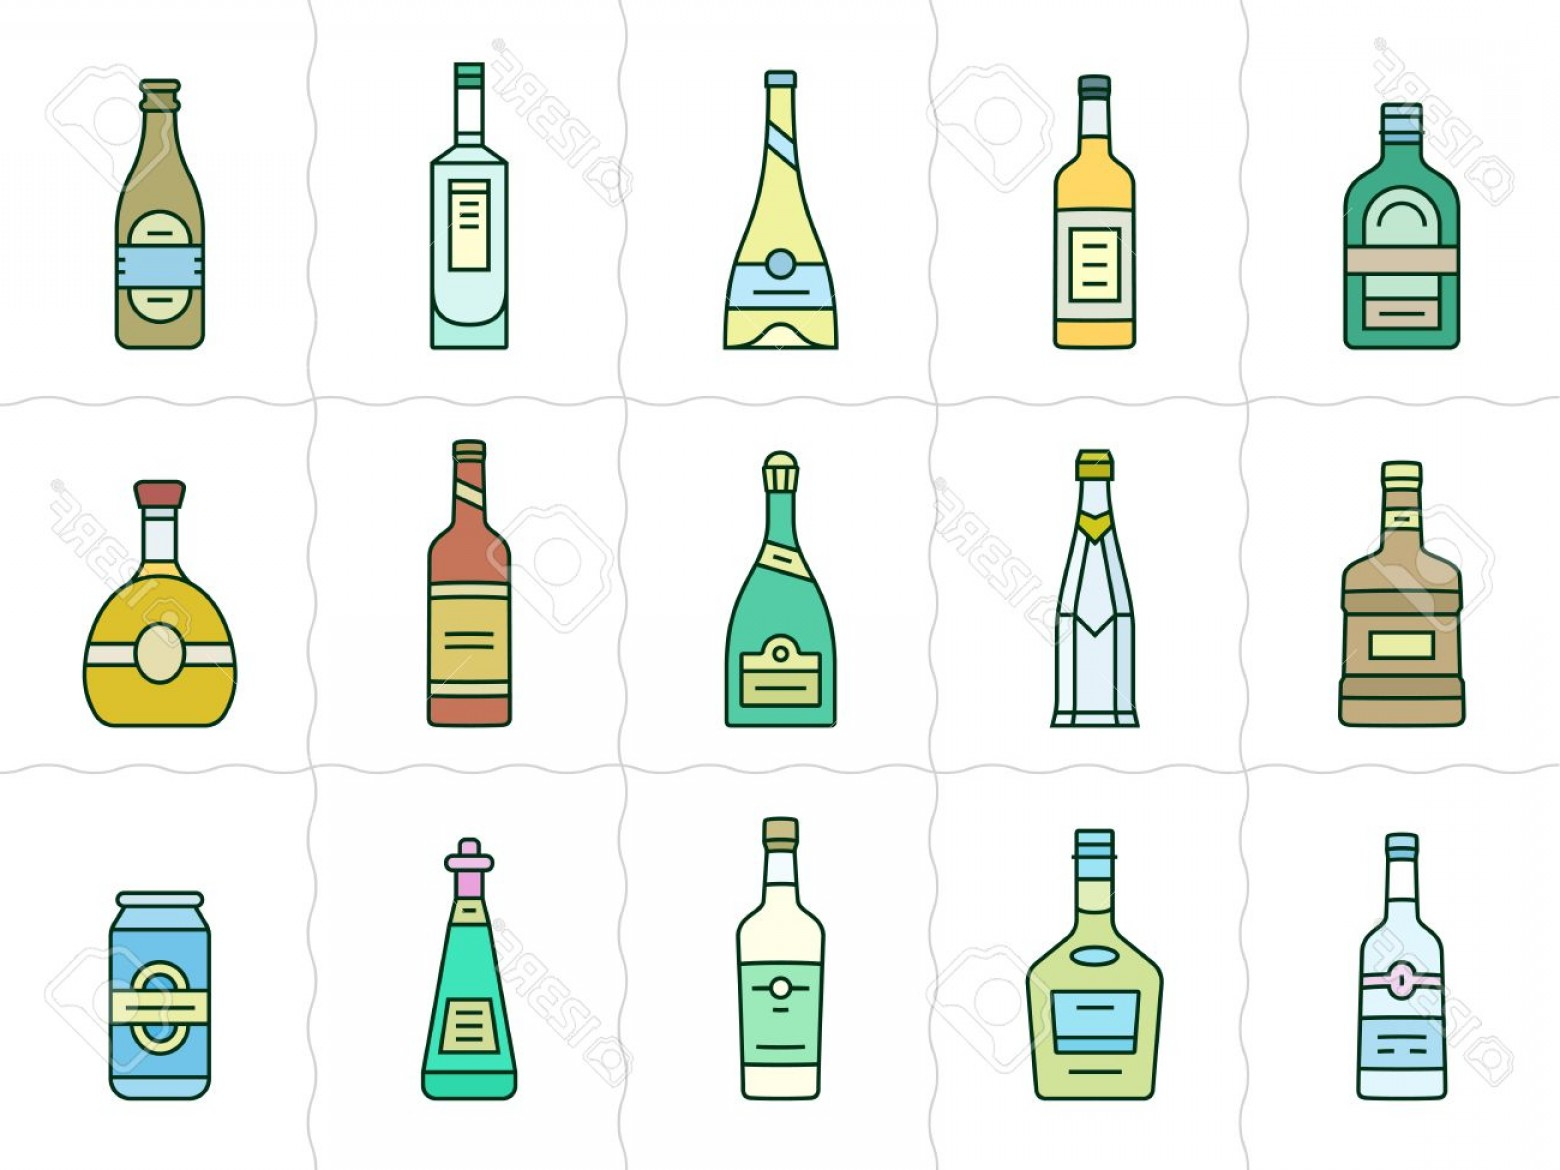 Alcohol Vector: Photostock Vector Different Types Of Alcohol Vector Icons Of Alcohol Bottles Linear Style